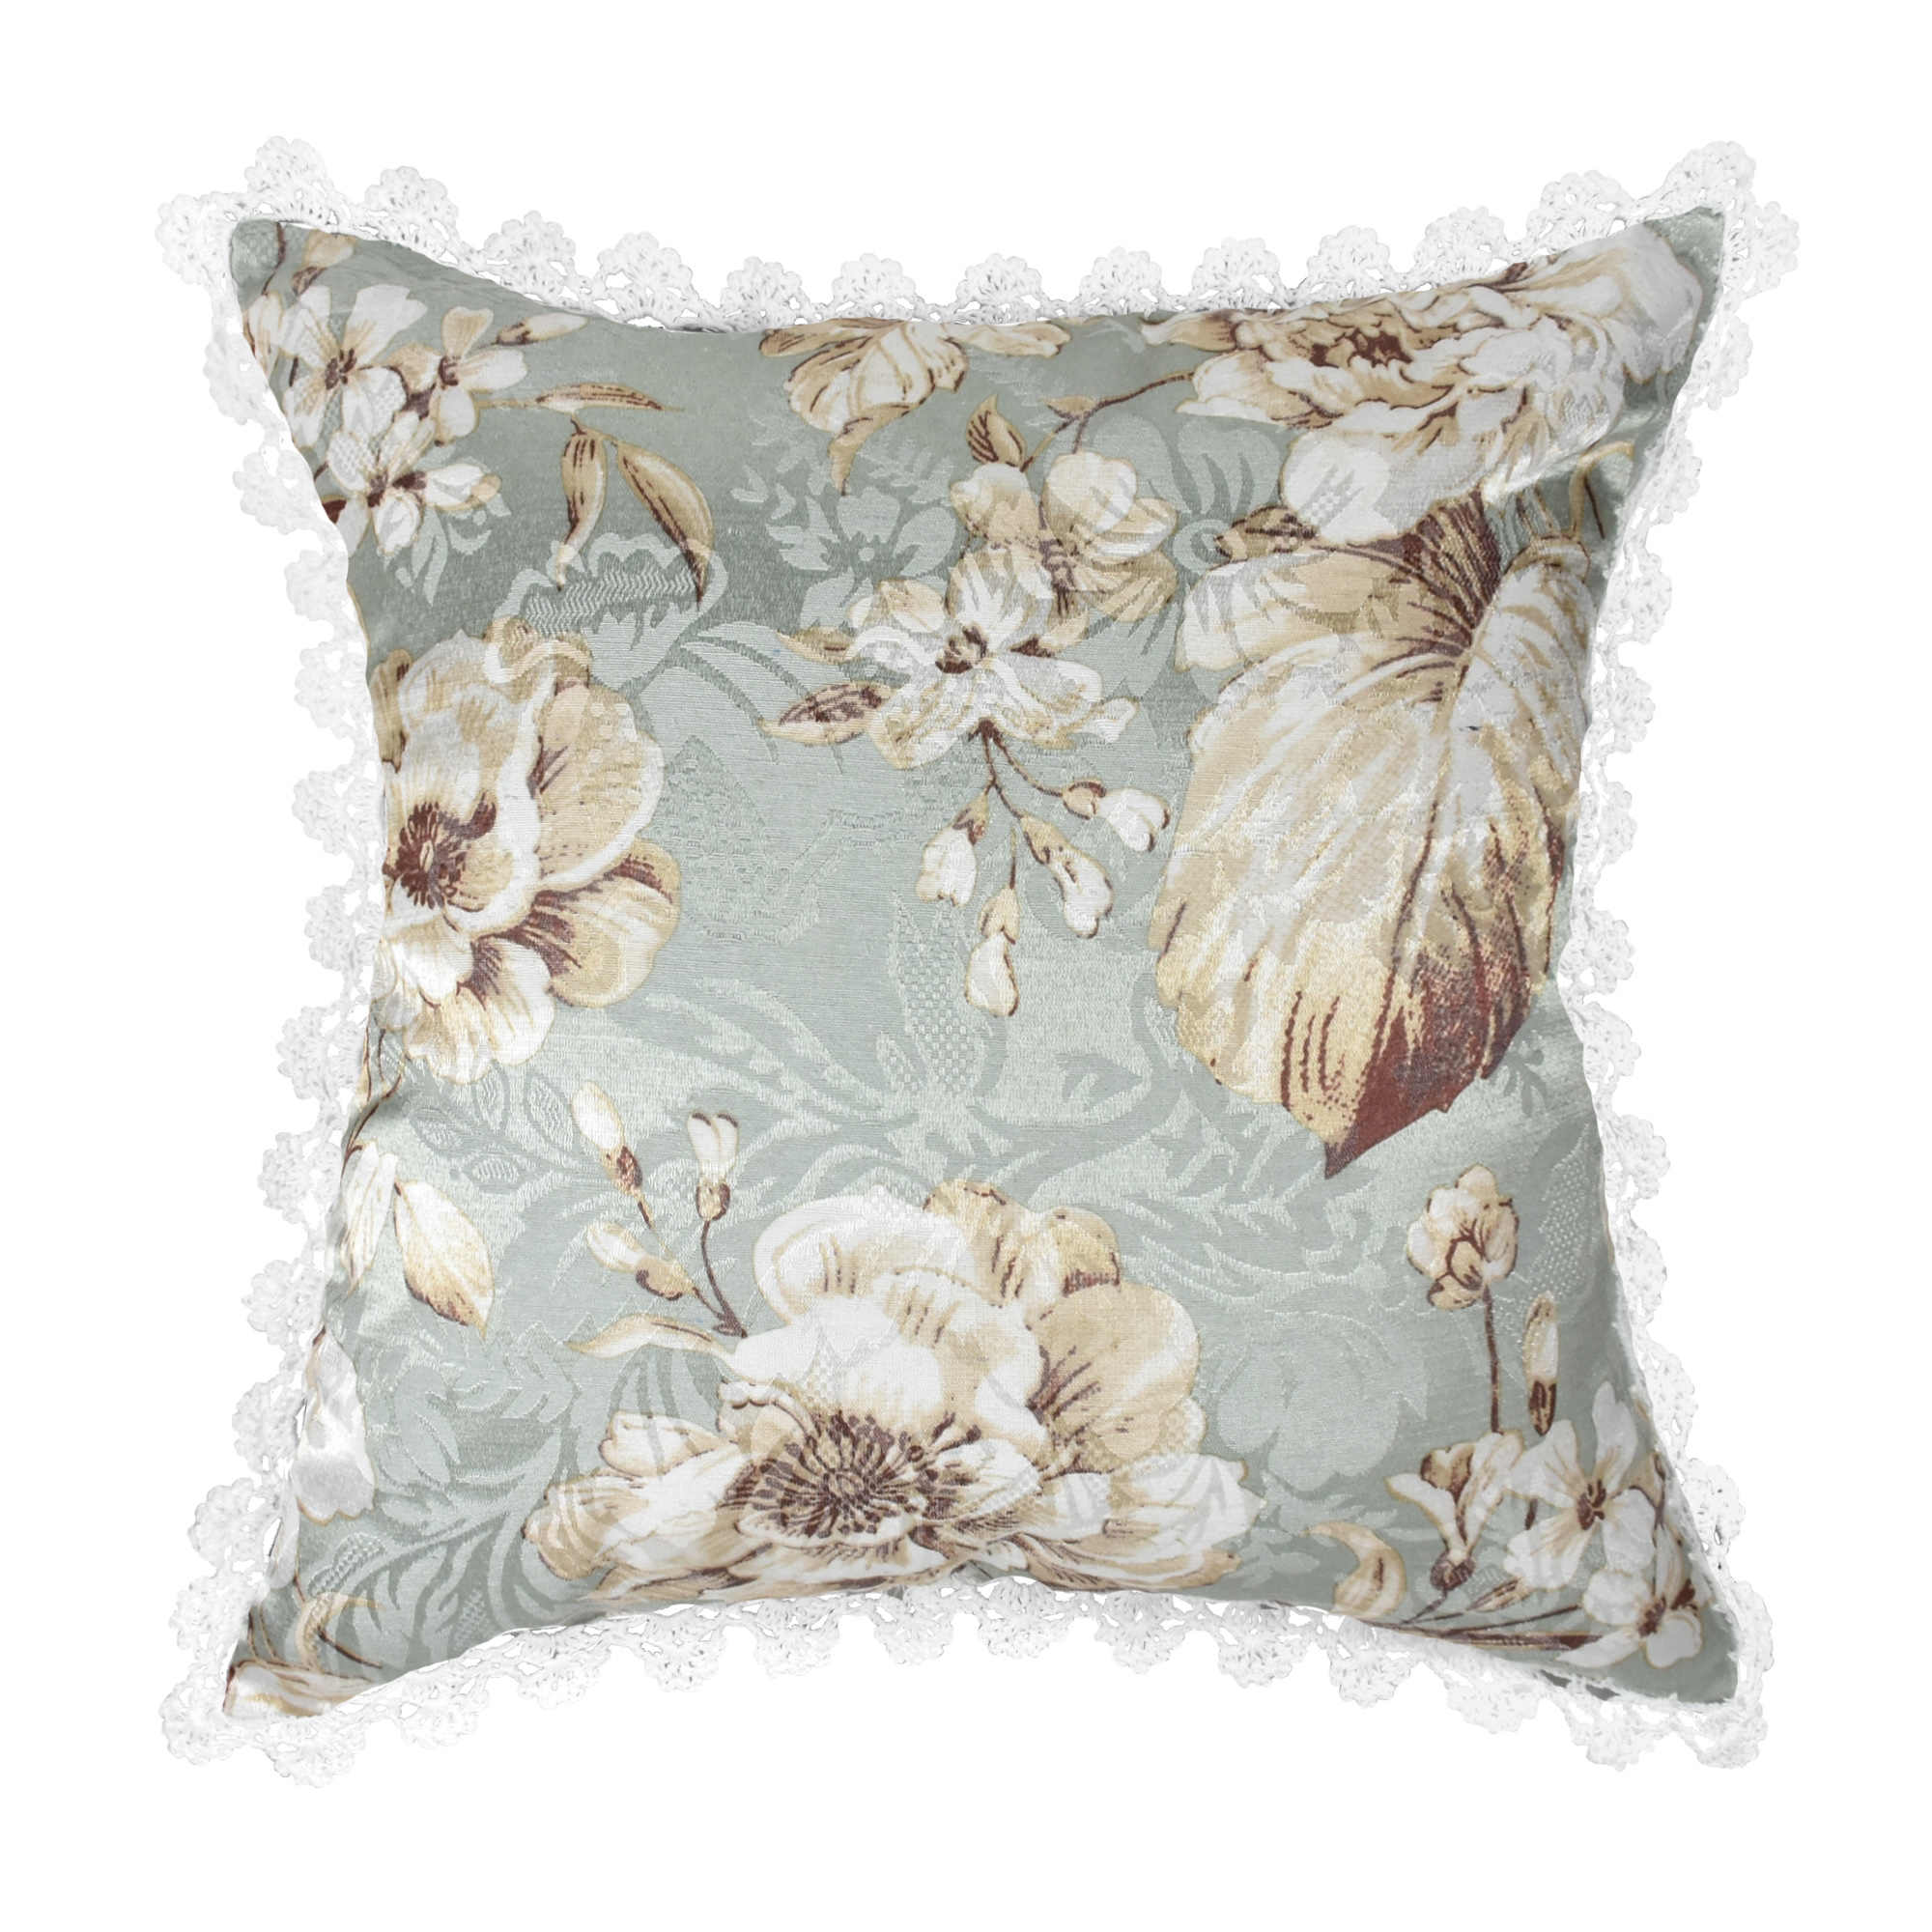 White Shabby Chic Pillow Cases : Shabby Chic Crochet Trim Tropical White Floral Jacquard Throw Pillow Case Pair - AeraVida